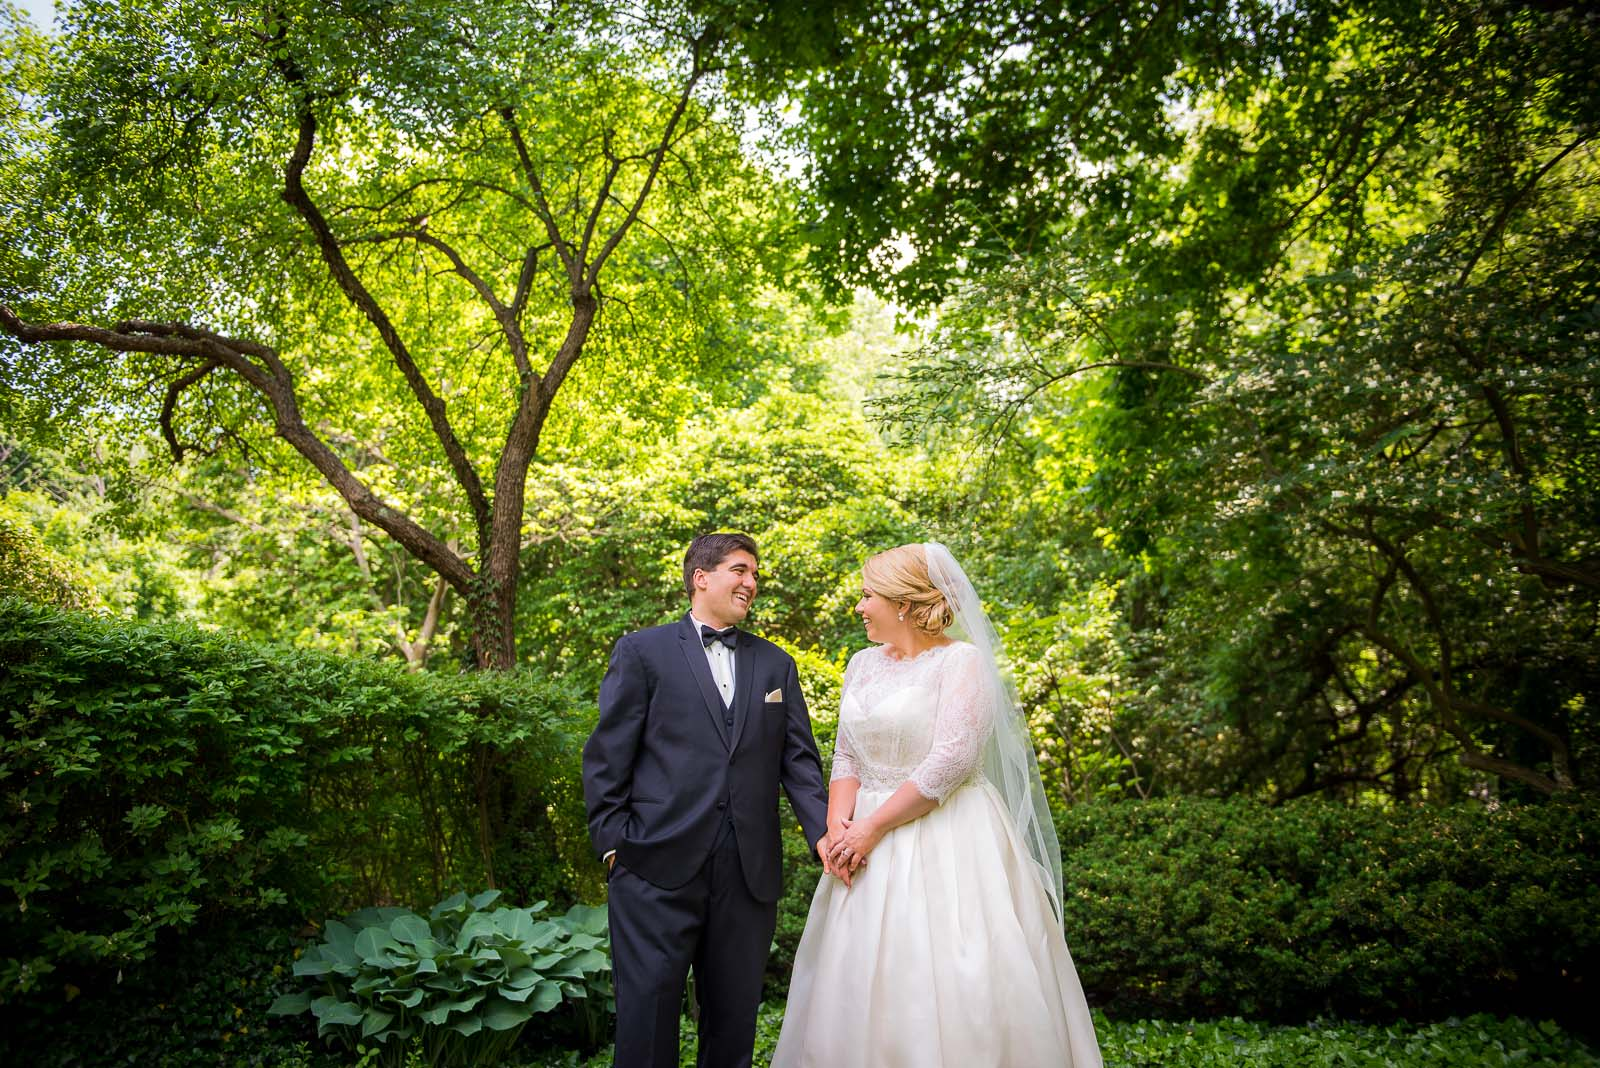 eric_and_christy_photographers_blog_wedding_emilypeter-12